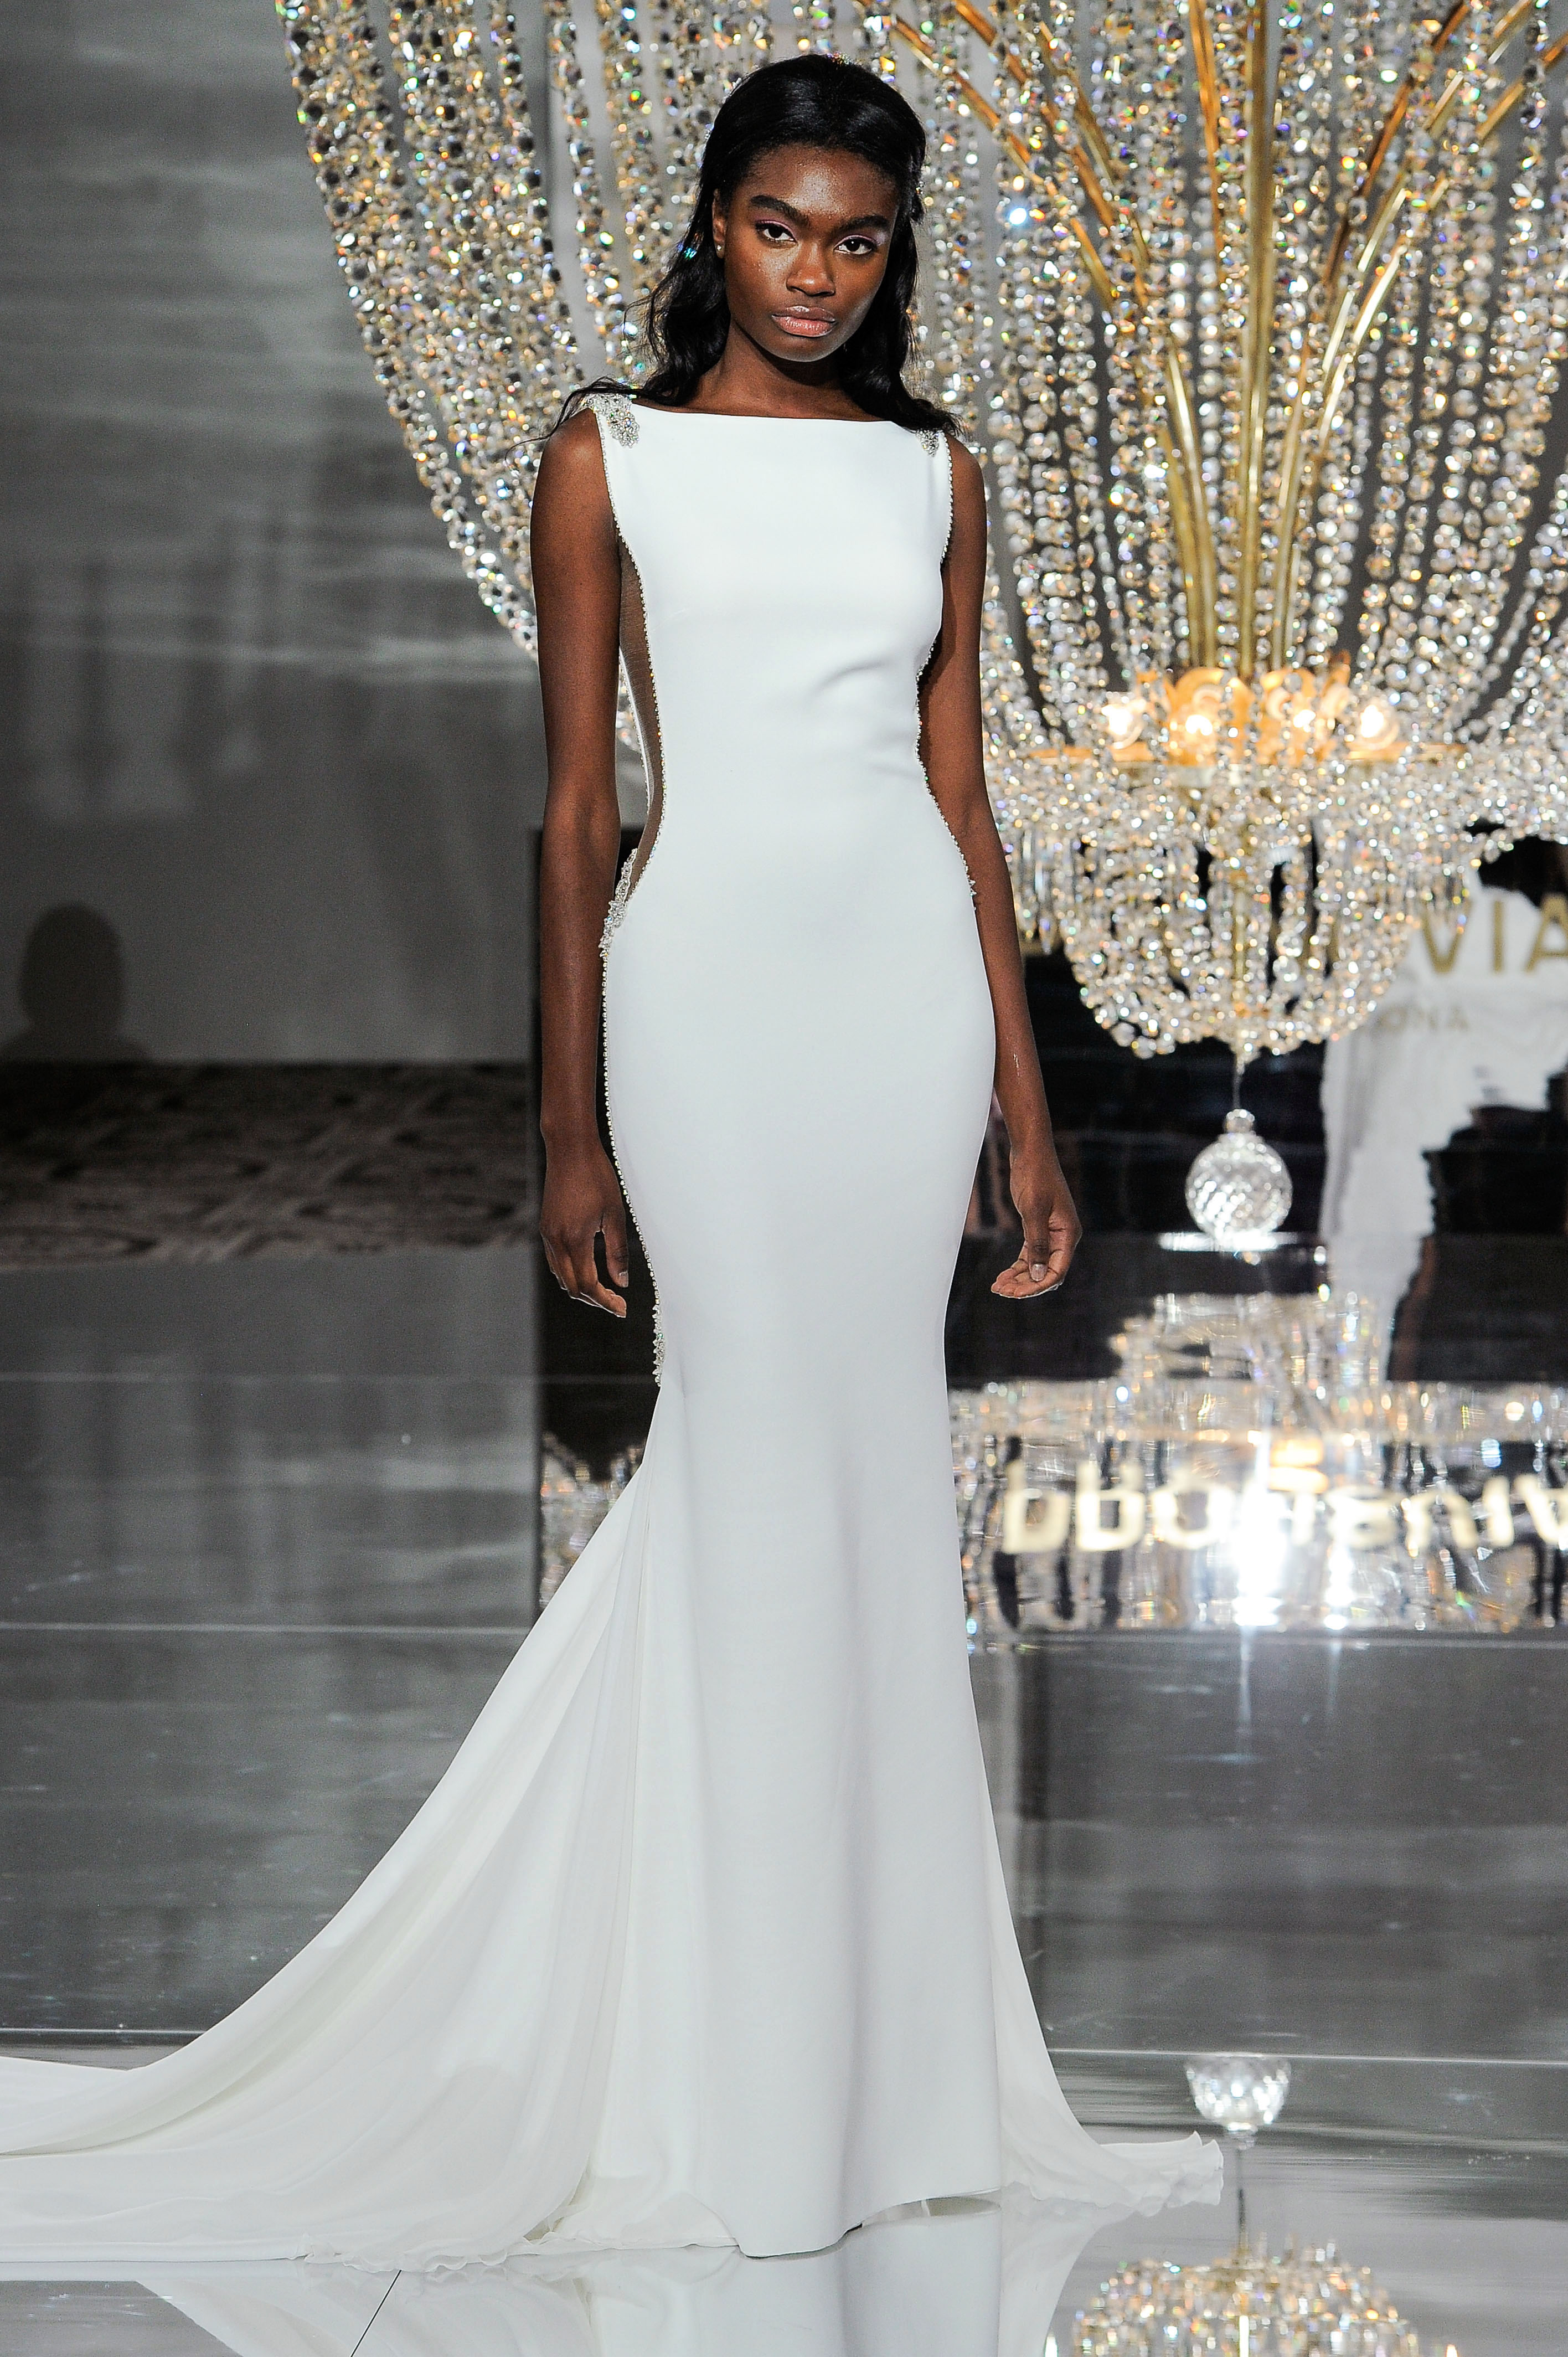 pronovias wedding dress fall 2018 trumpet boatneck side panel